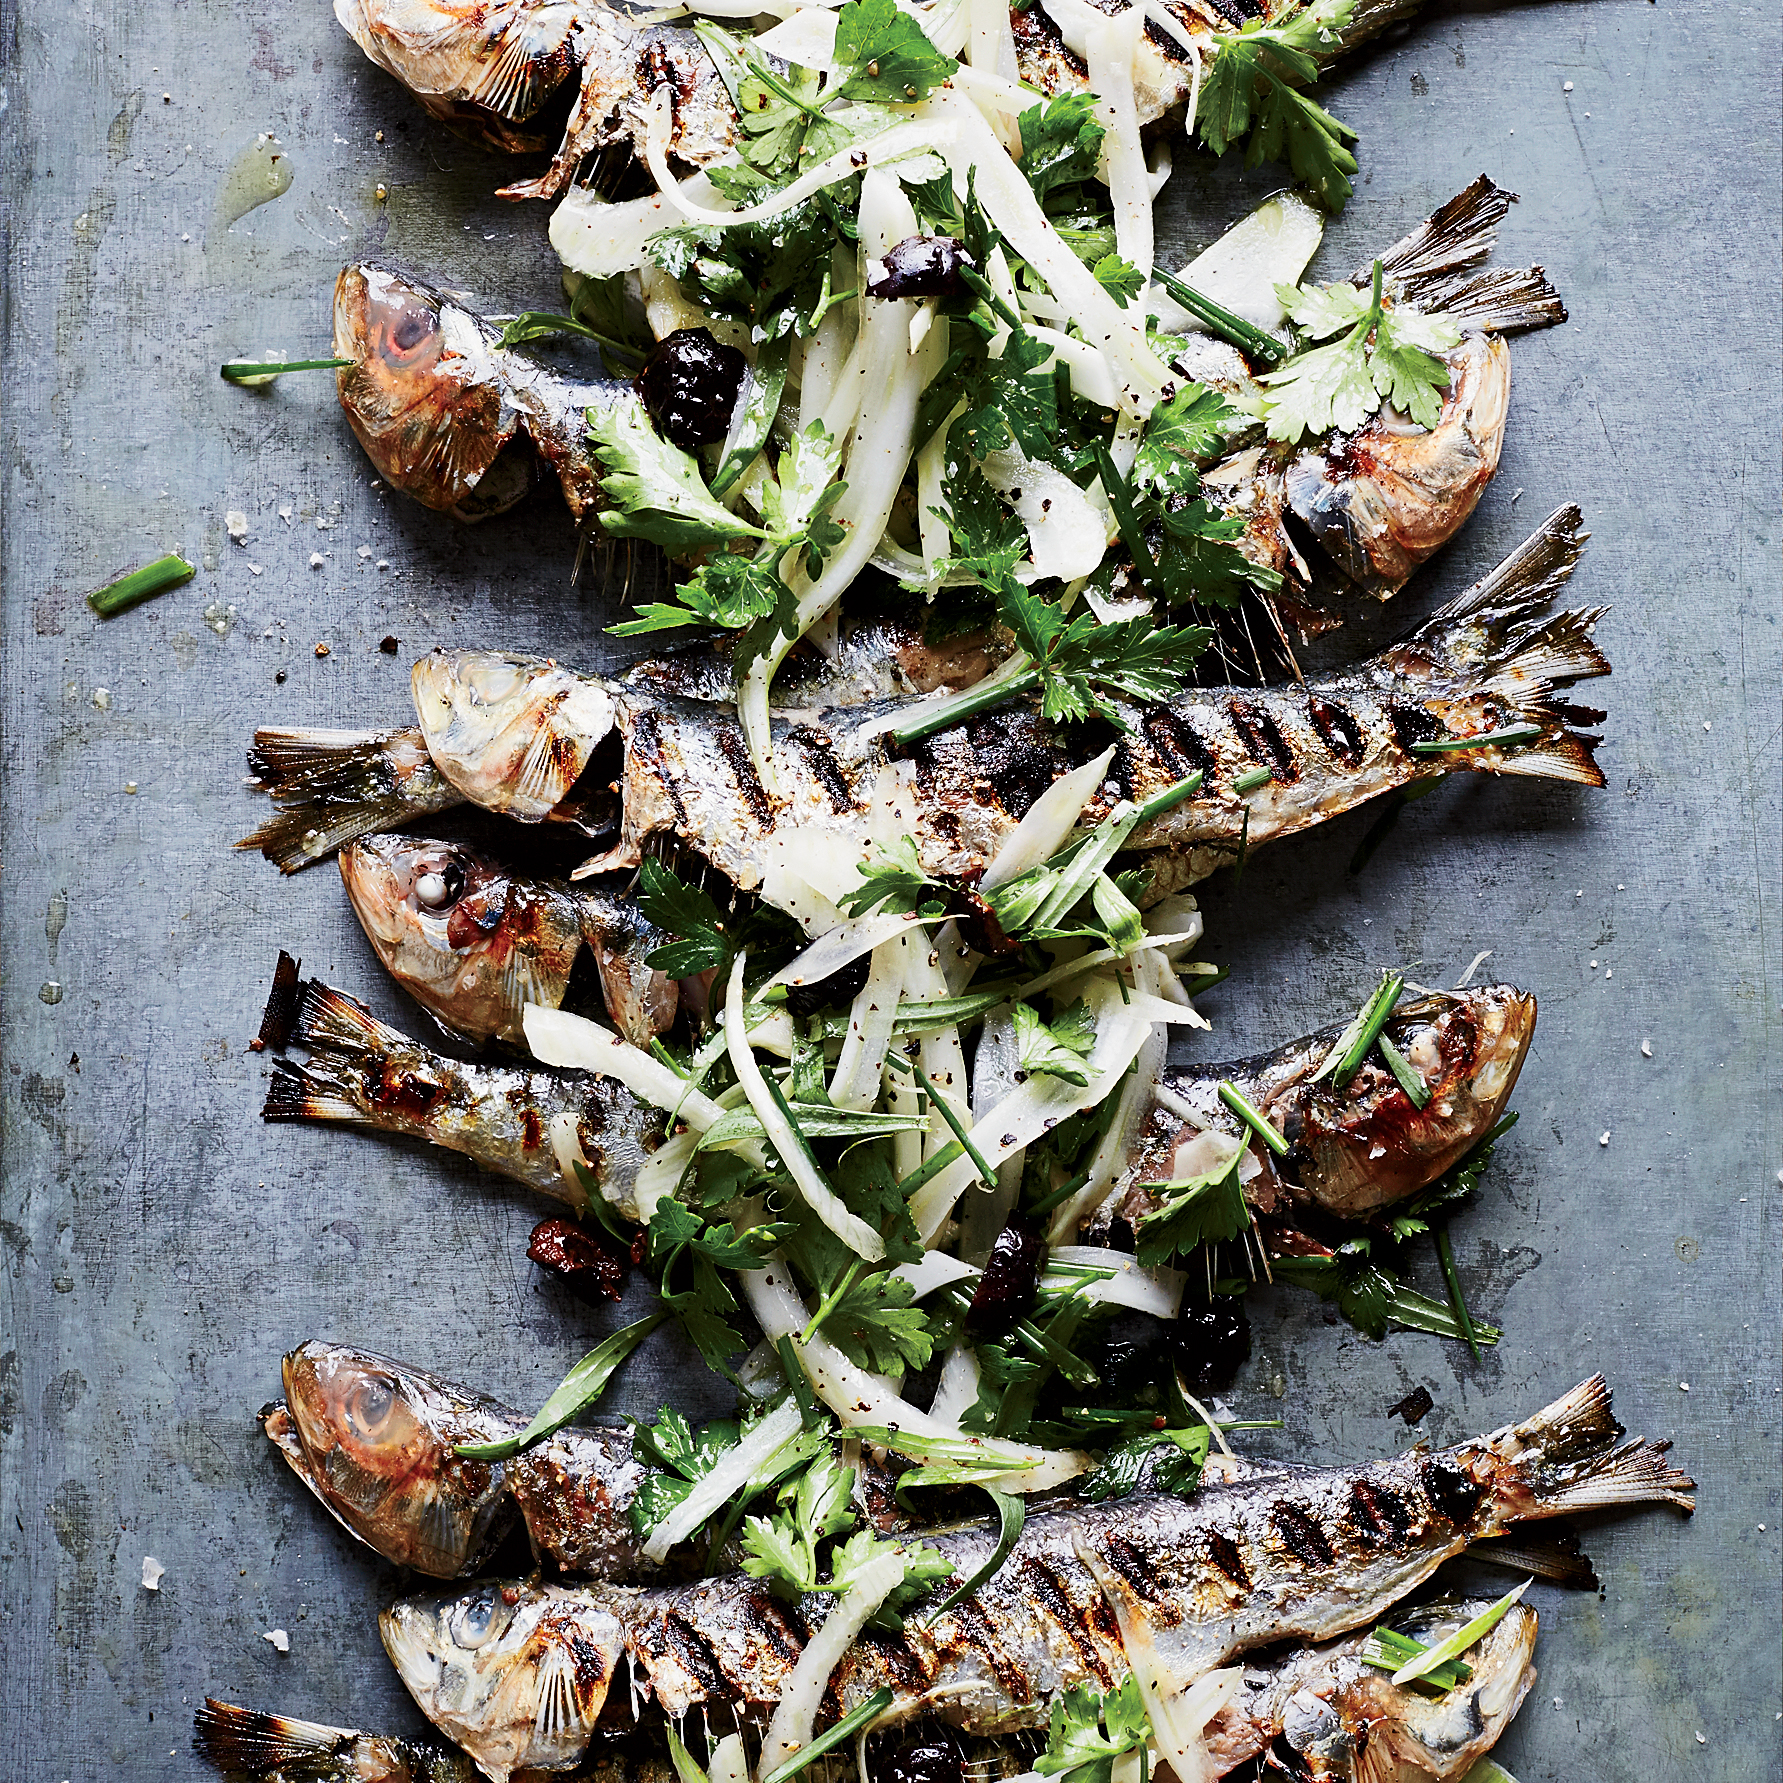 Day 22: Grilled Sardines with Herbed Fennel-and-Olive Salad